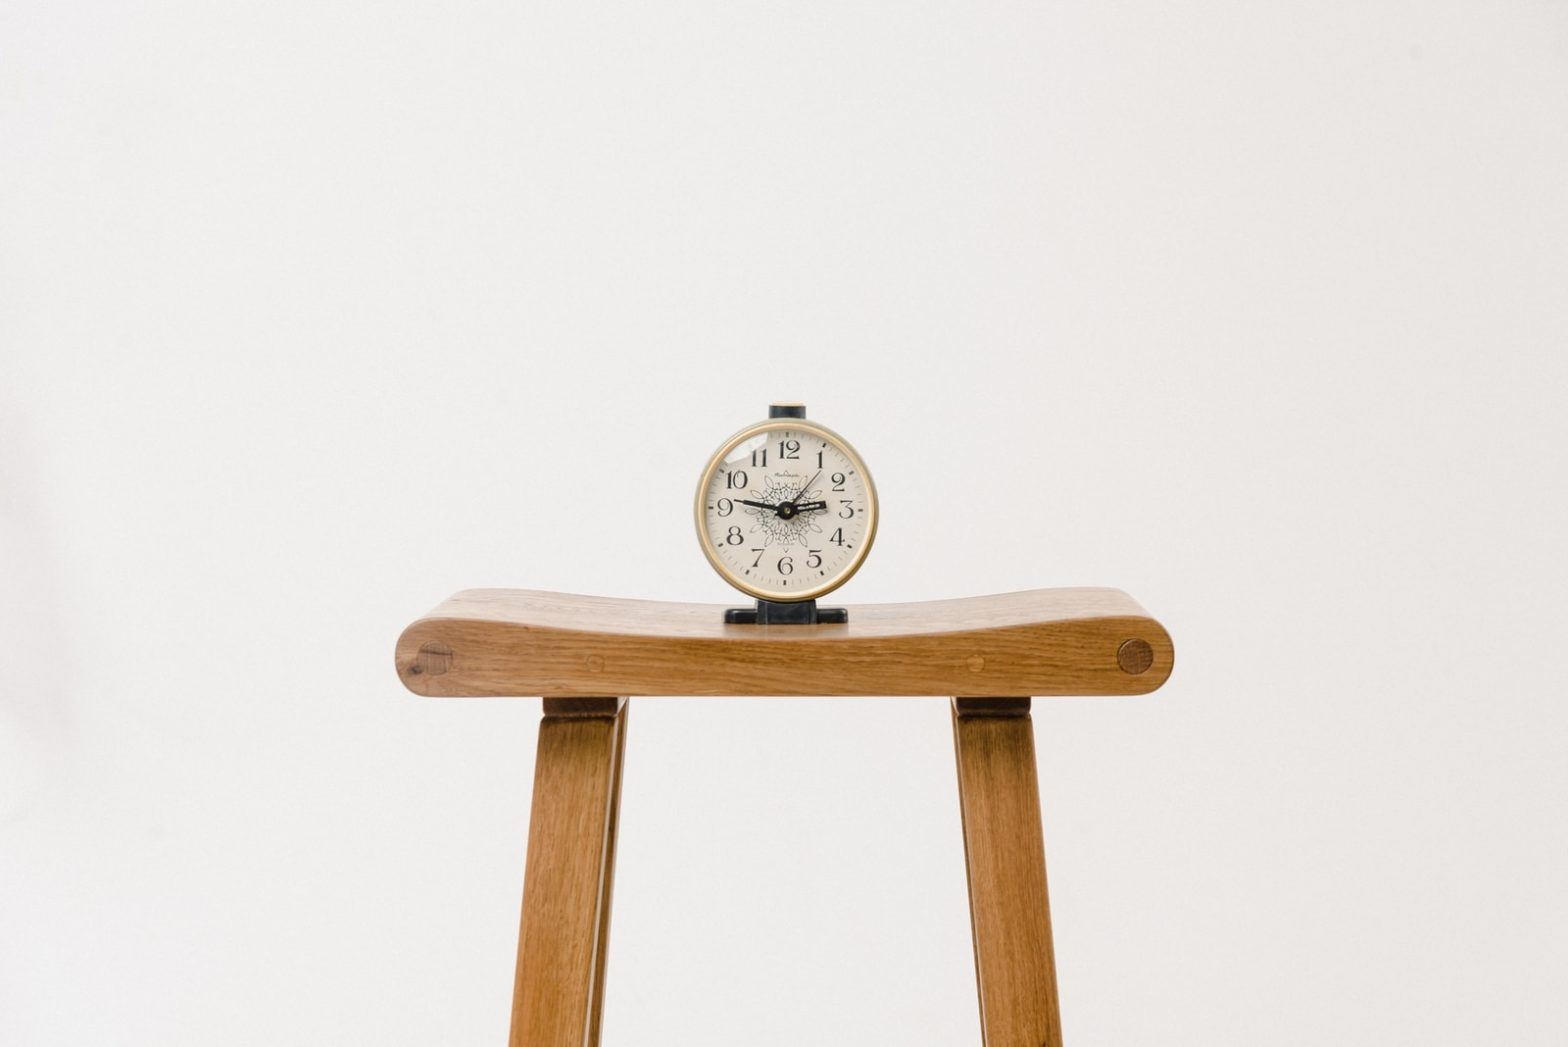 brown wooden table clock at 10 10